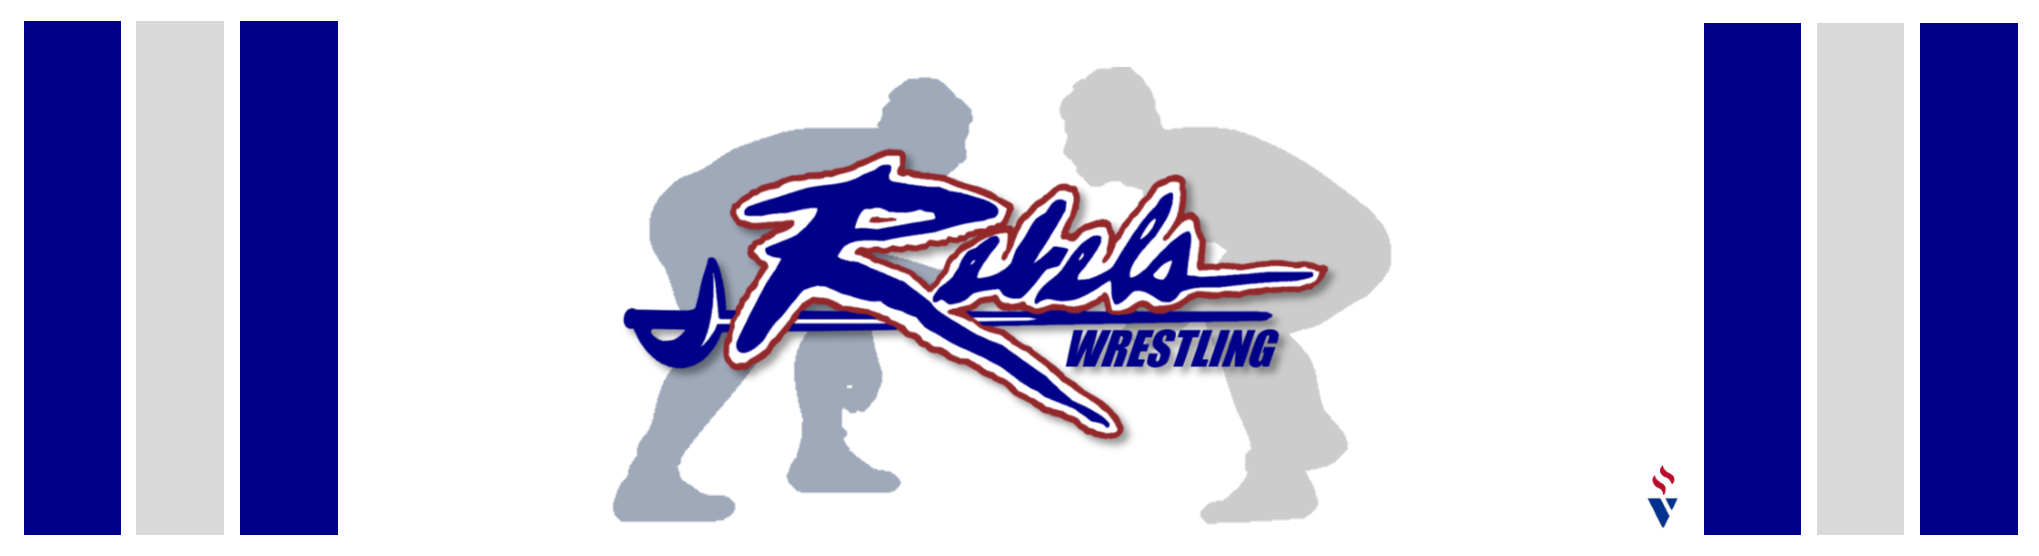 Wrestling earns indy awards, advances to state playoffs